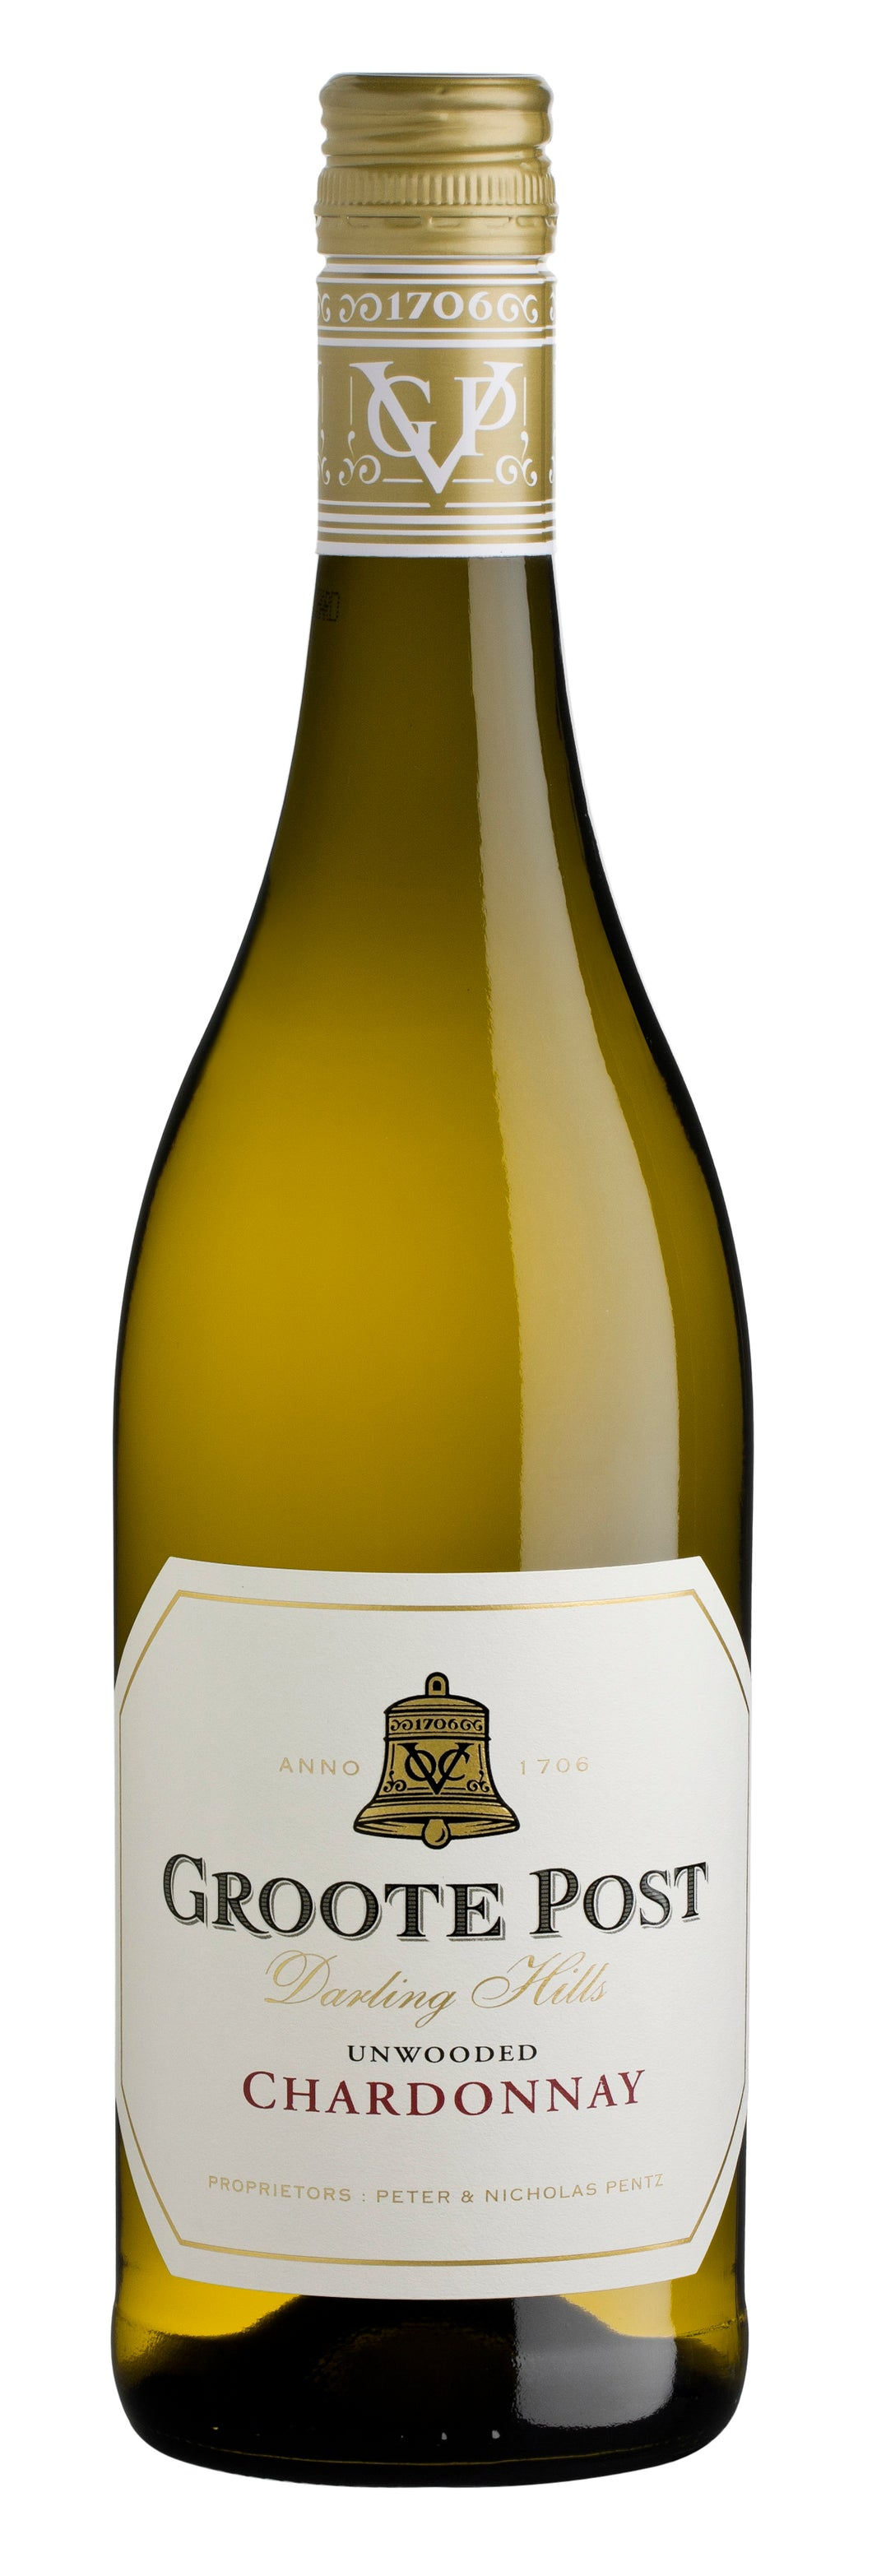 2017 Groote Post Unwooded Chardonnay